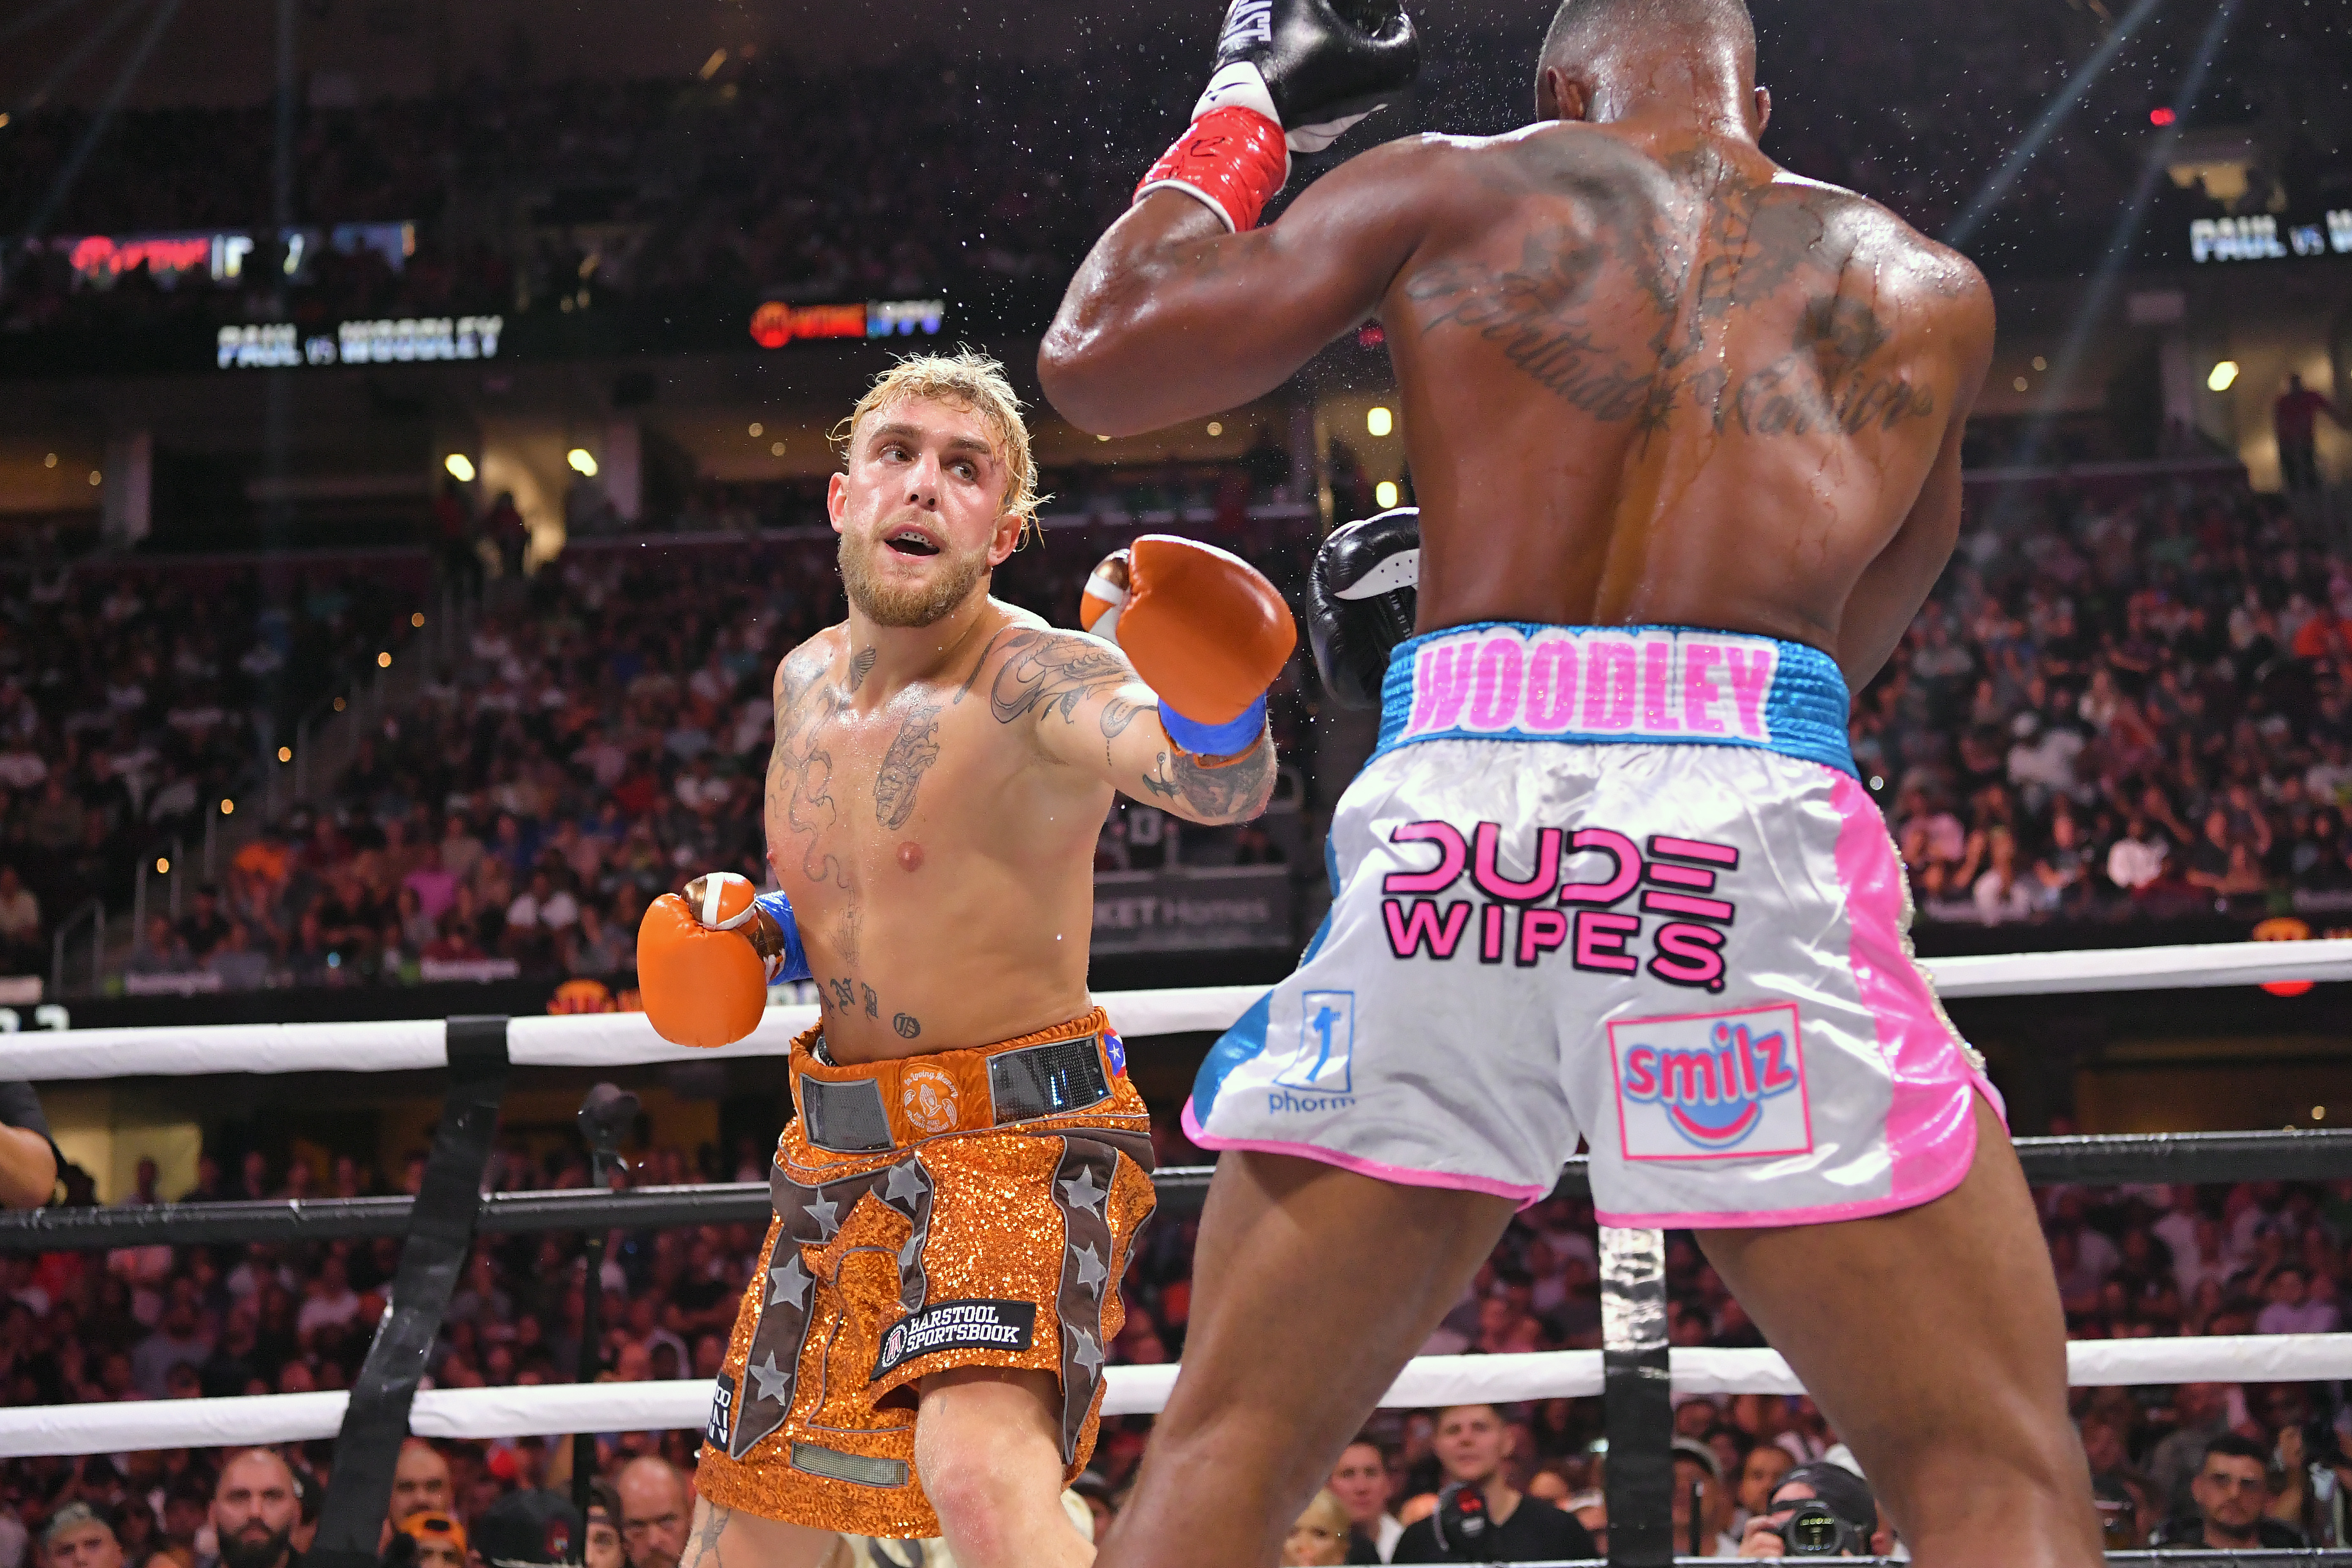 Jake Paul keeps an undefeated record with a split decision win over former UFC champion Tyron Woodley.